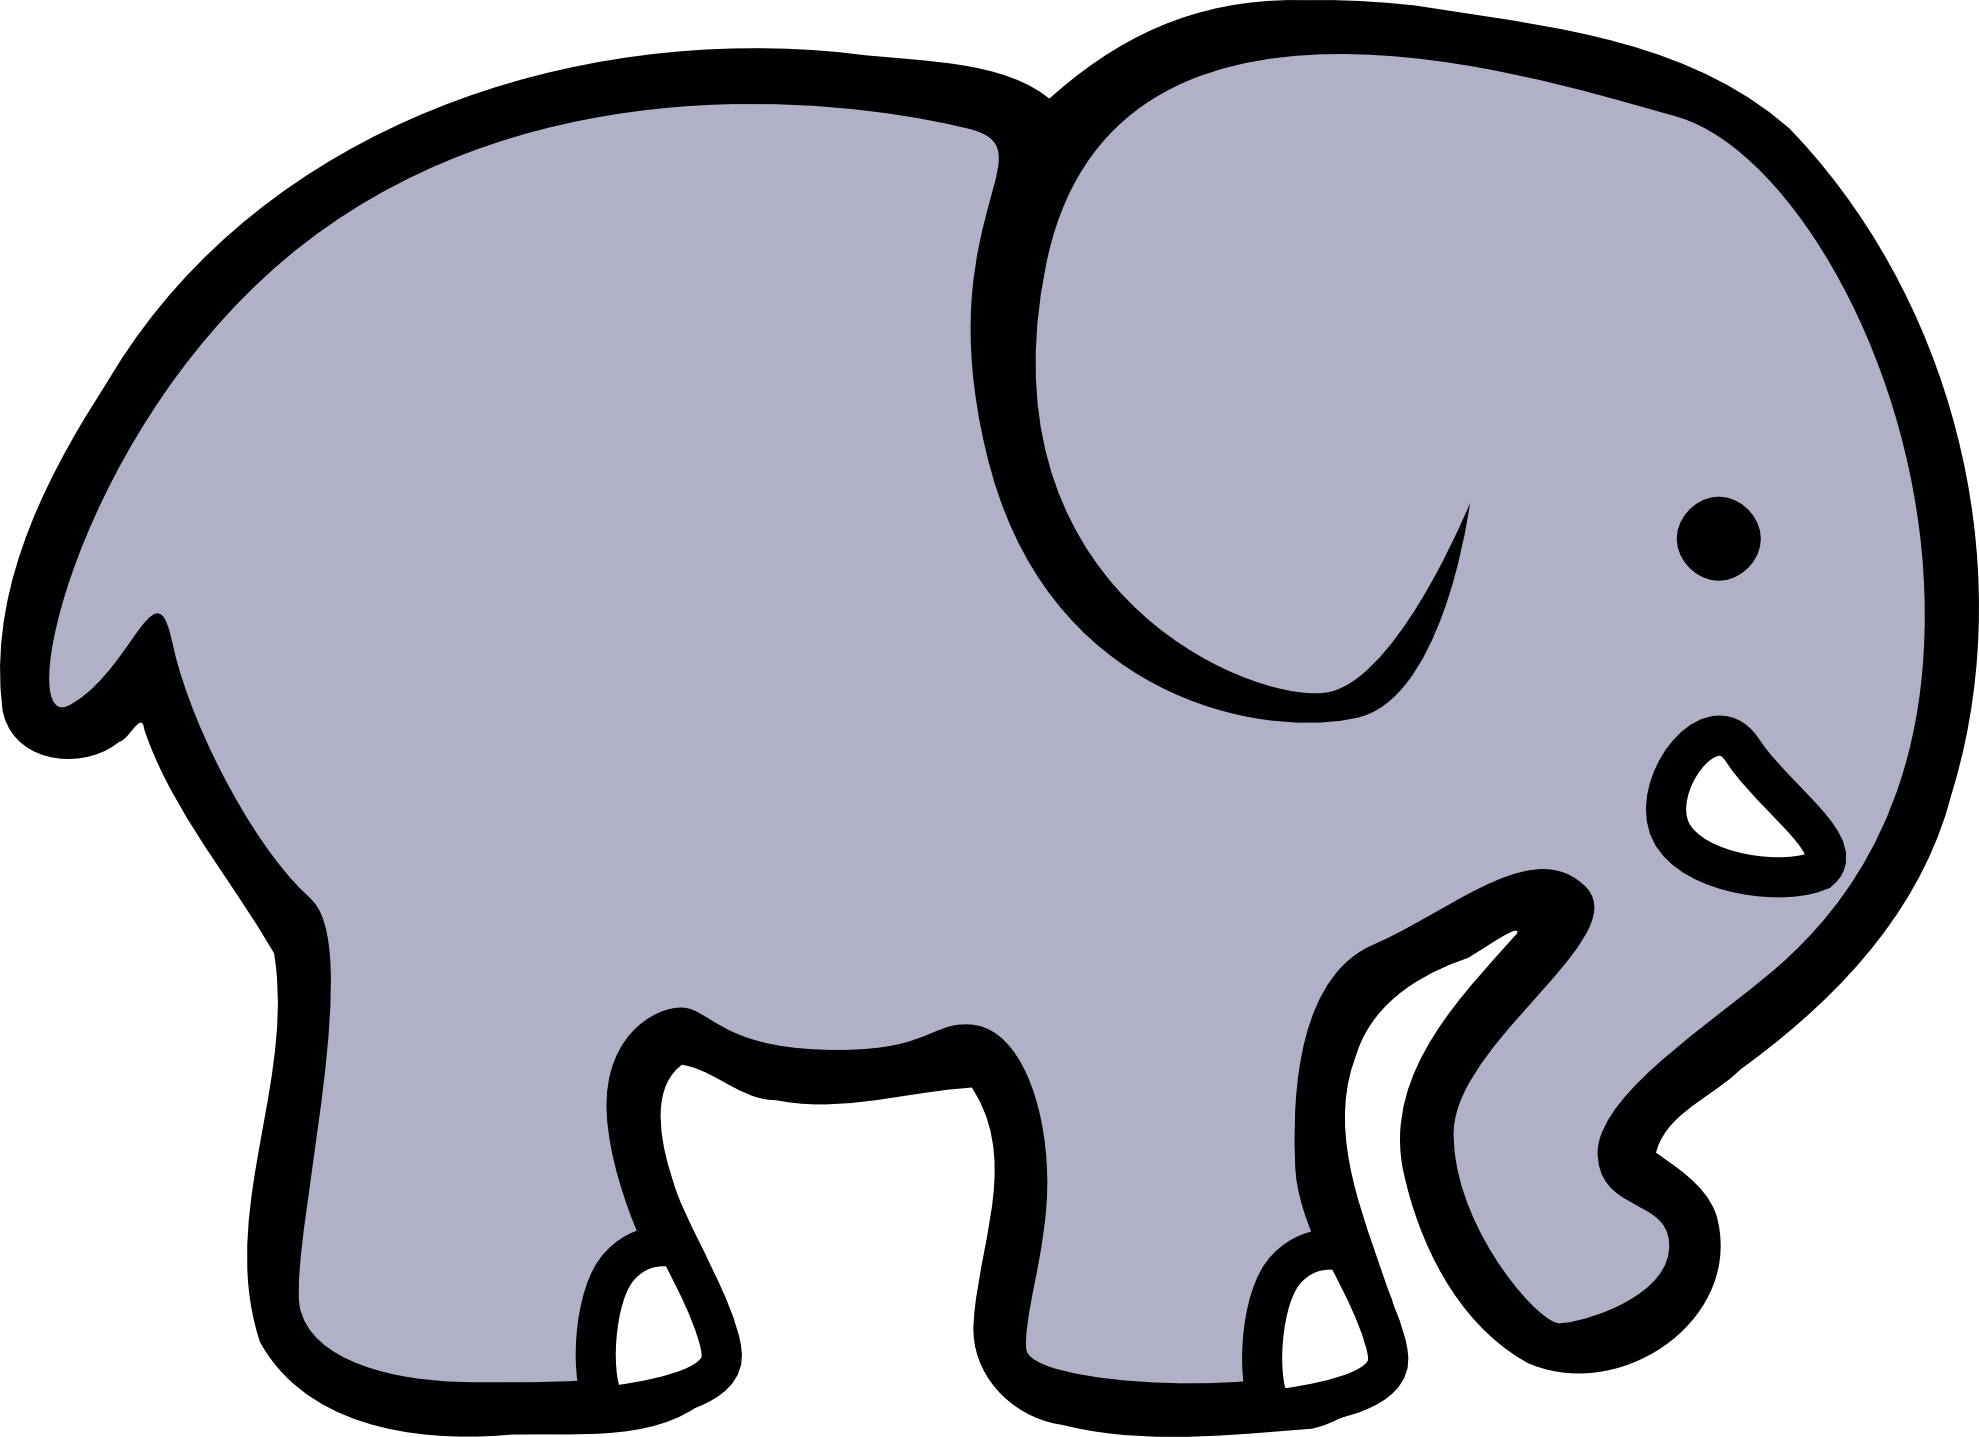 Elephant clip art black and white free clipart 2.